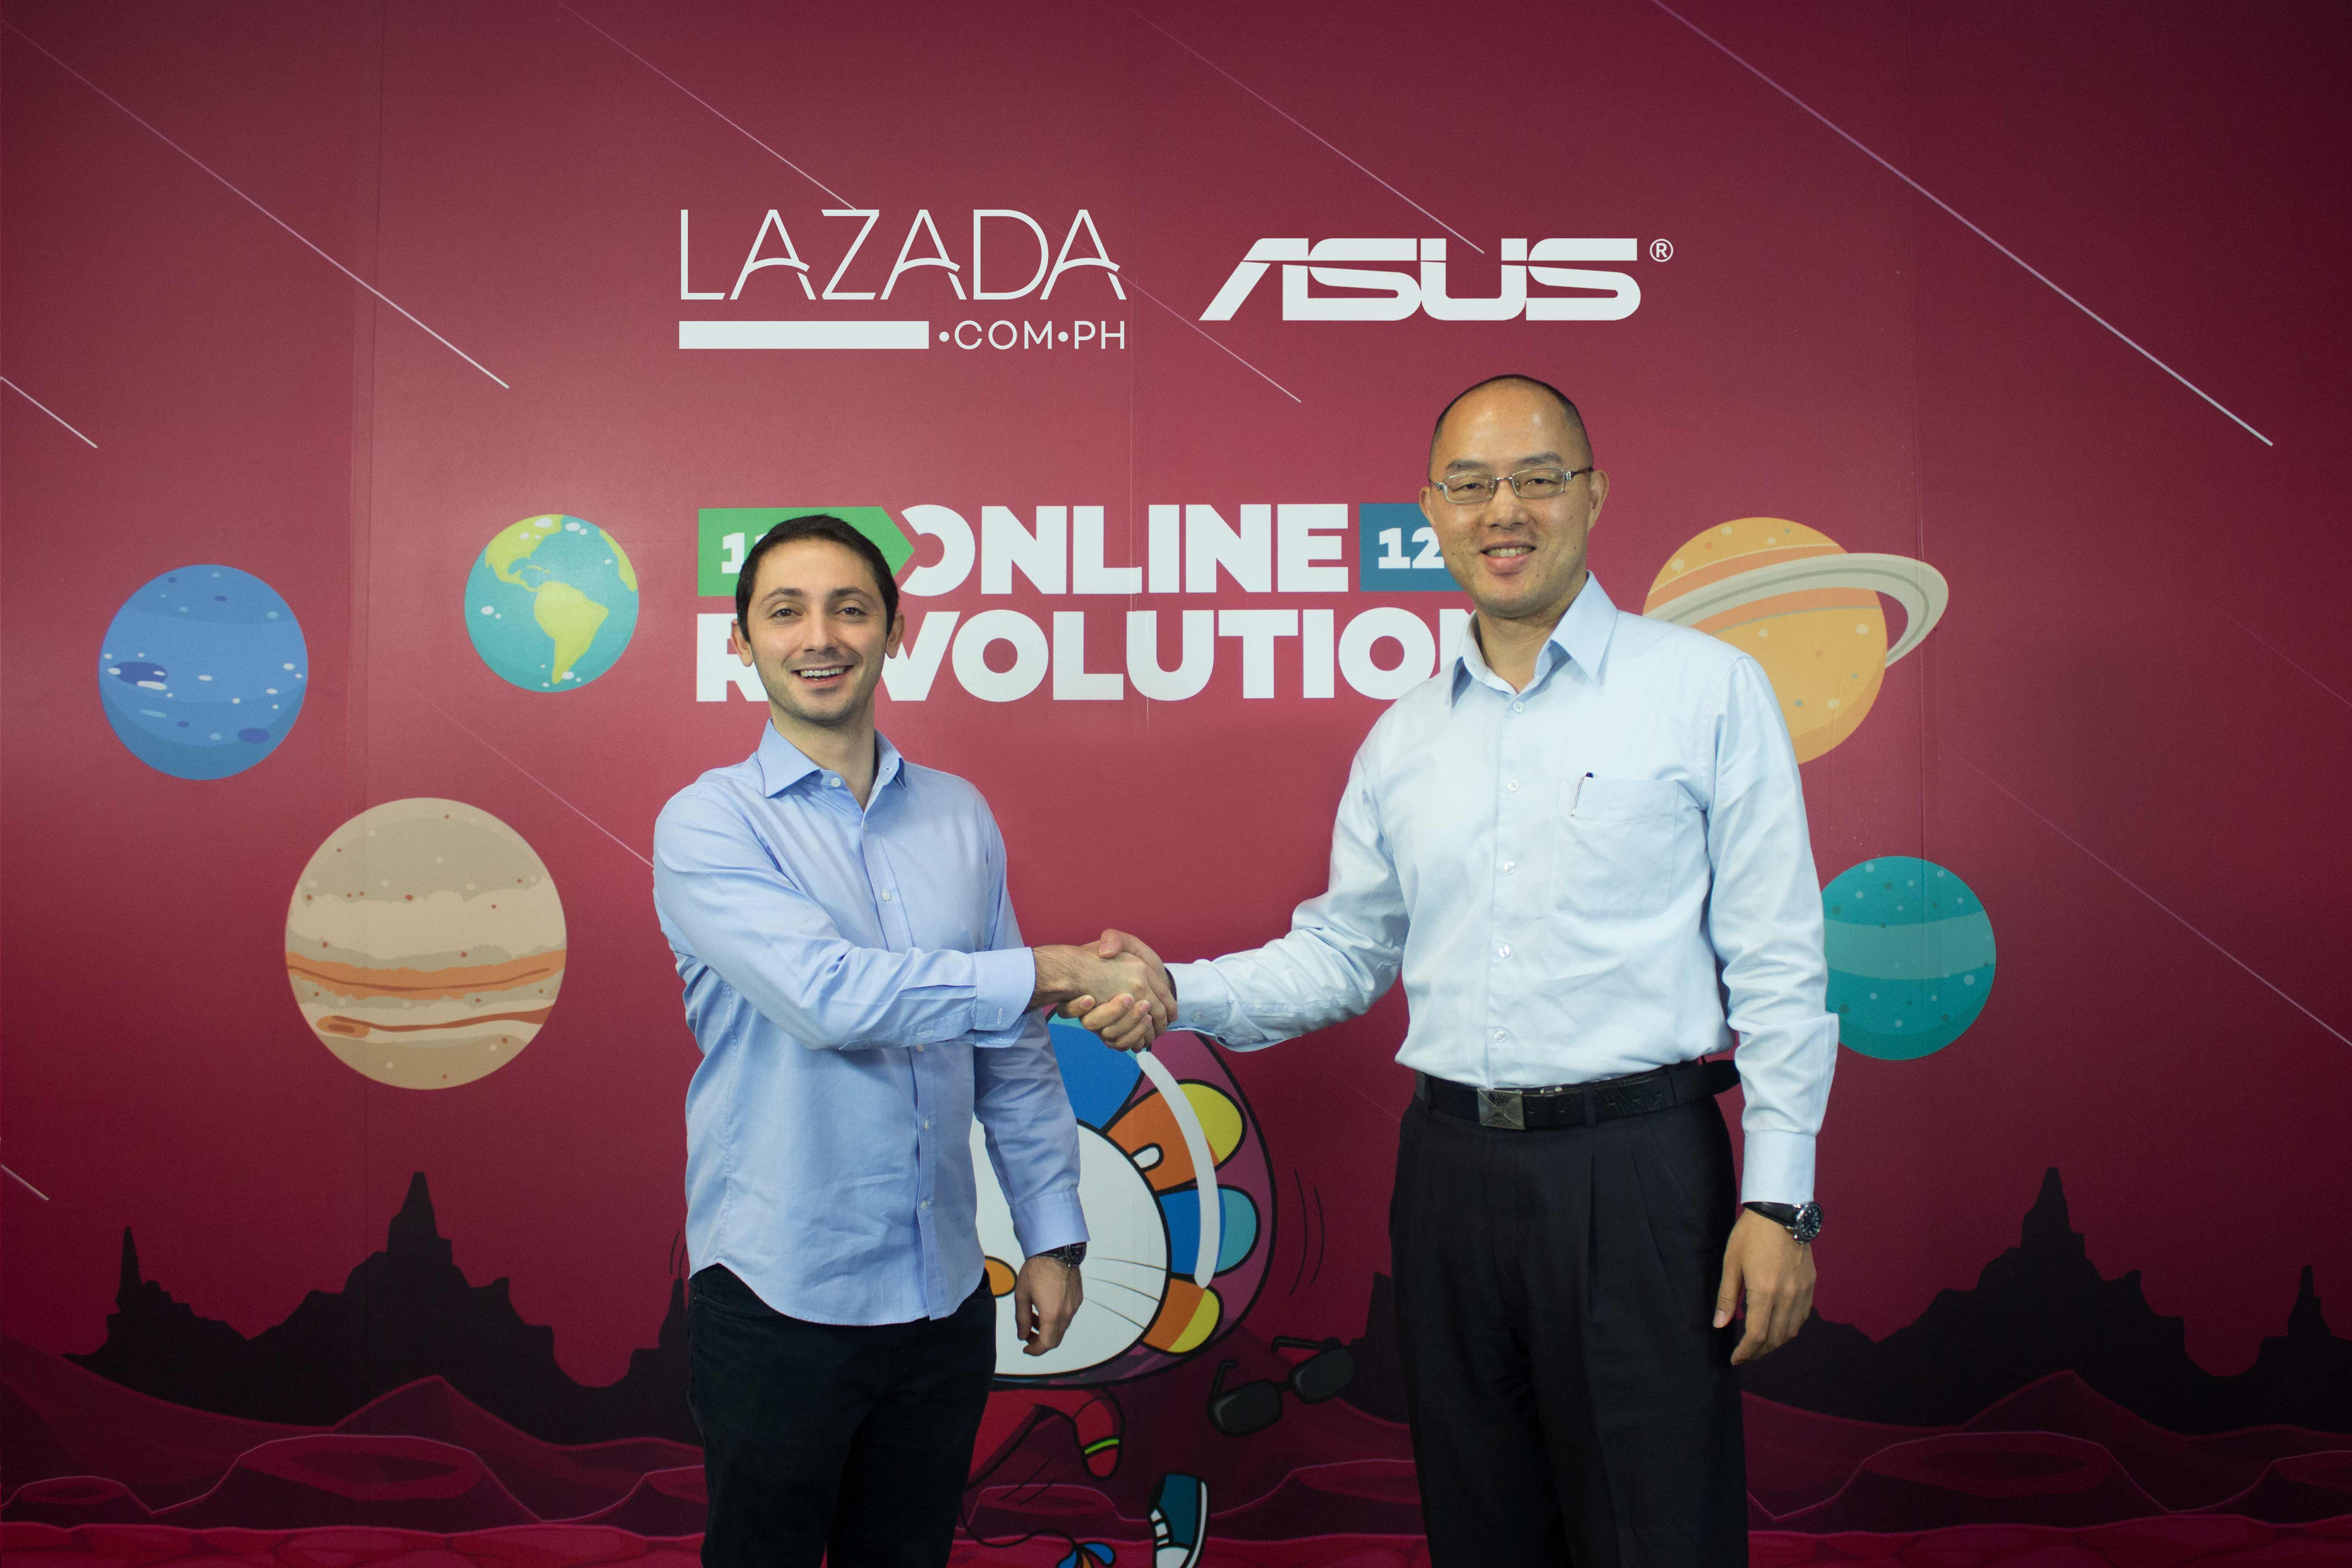 L:R Lazada Philippines' Chief Executive Officer and Co-Founder Inanc Balci with ASUS Philippines Systems Group Country Manager, George Su